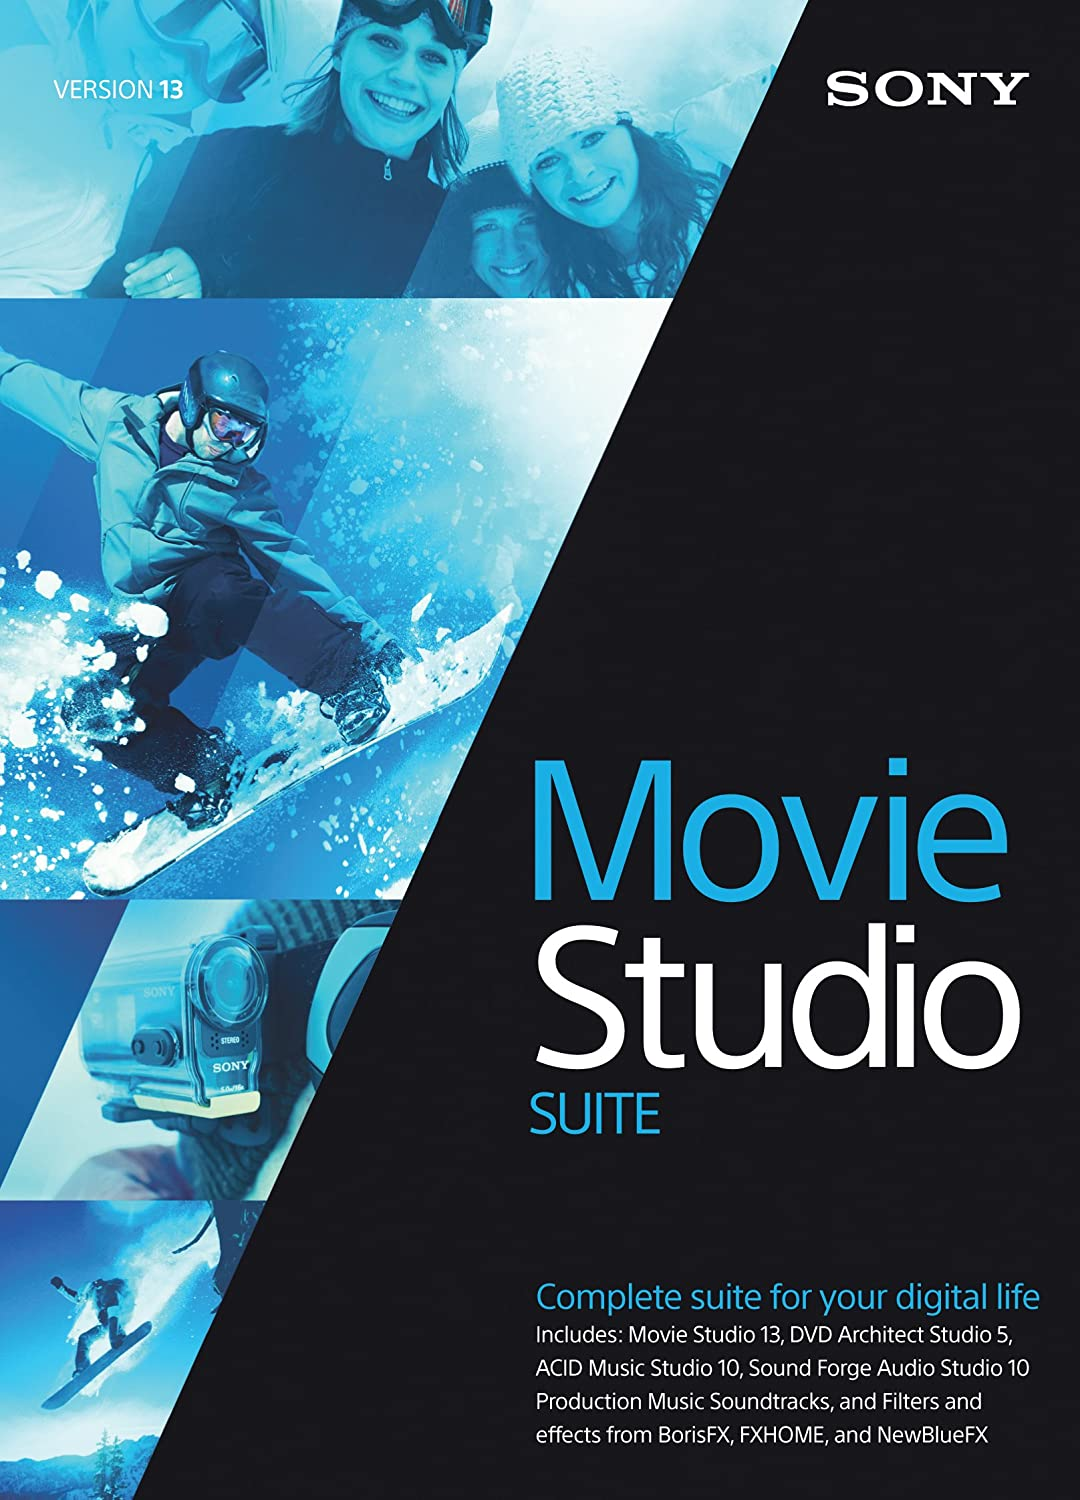 Sony Movie Studio 13 Suite- 30 Day Free Trial (Download)